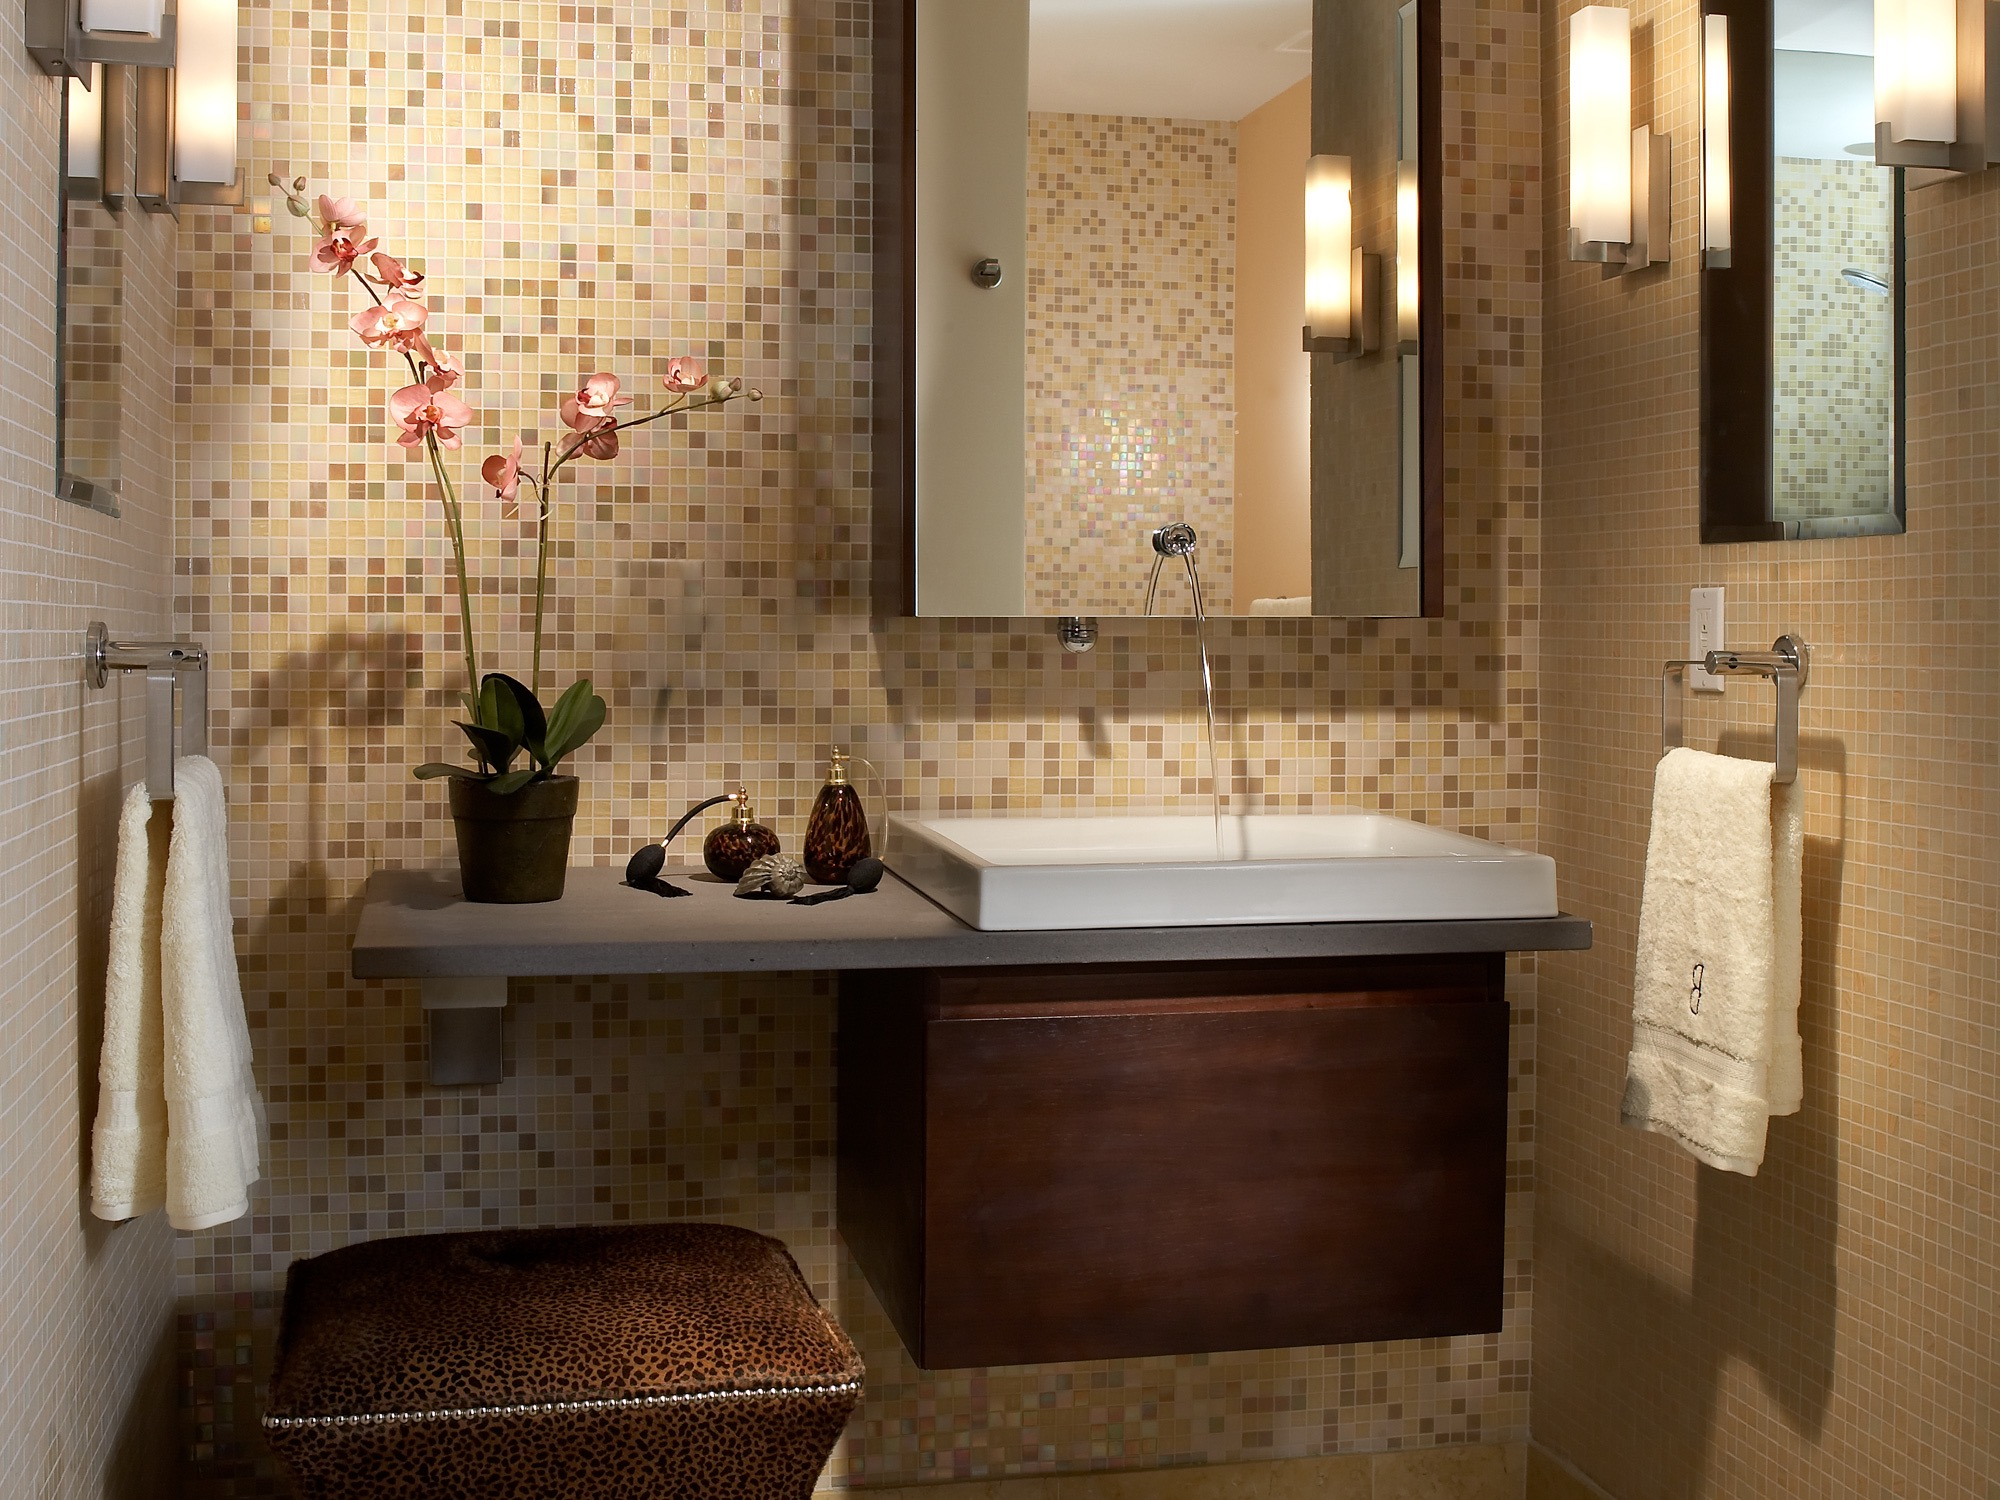 Serene Small Bathroom With Mosaic Tile Wall (View 17 of 21)